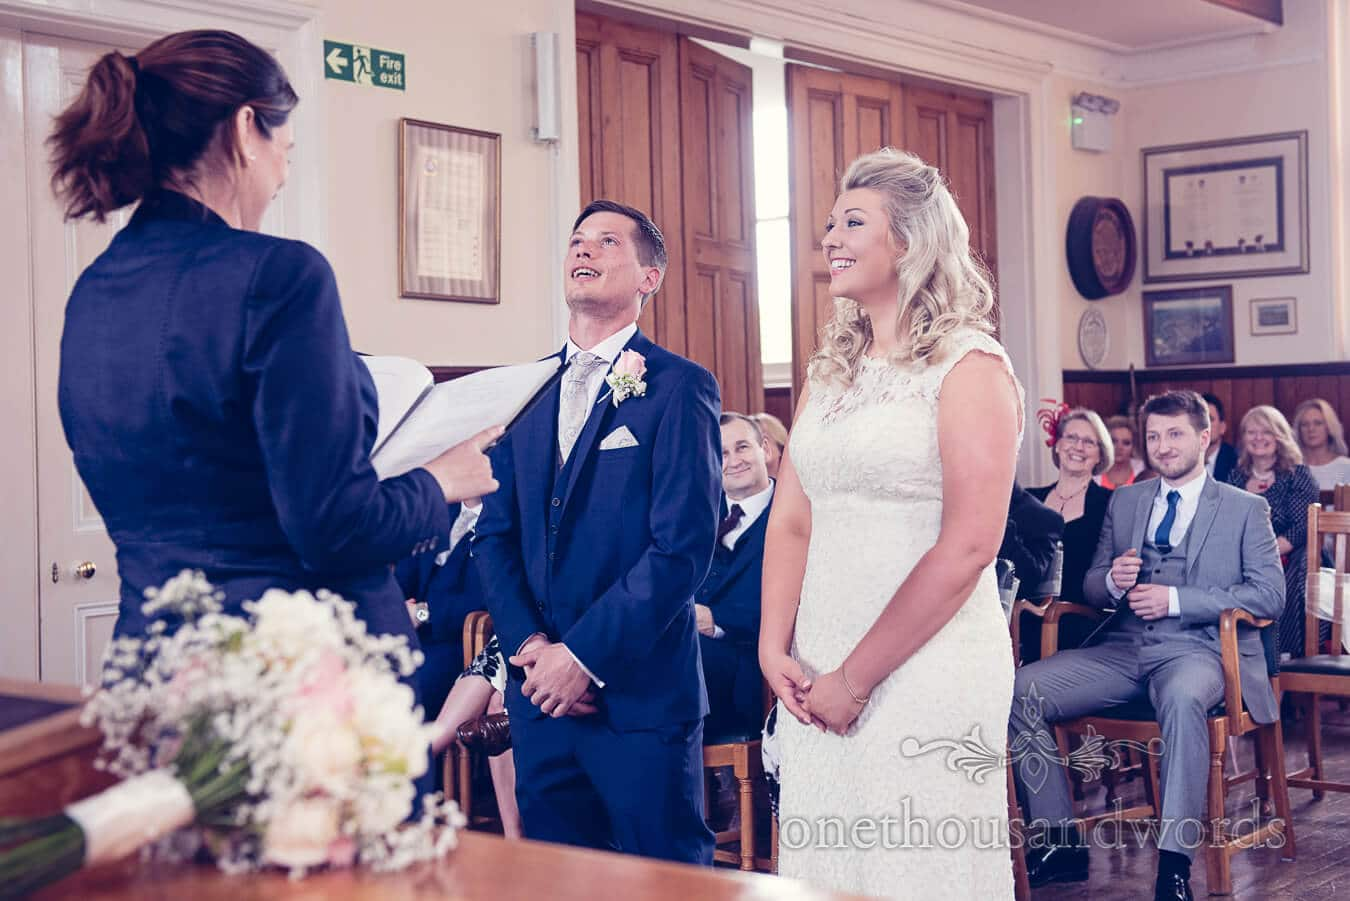 During civil ceremony from Purbeck Golf Club Wedding